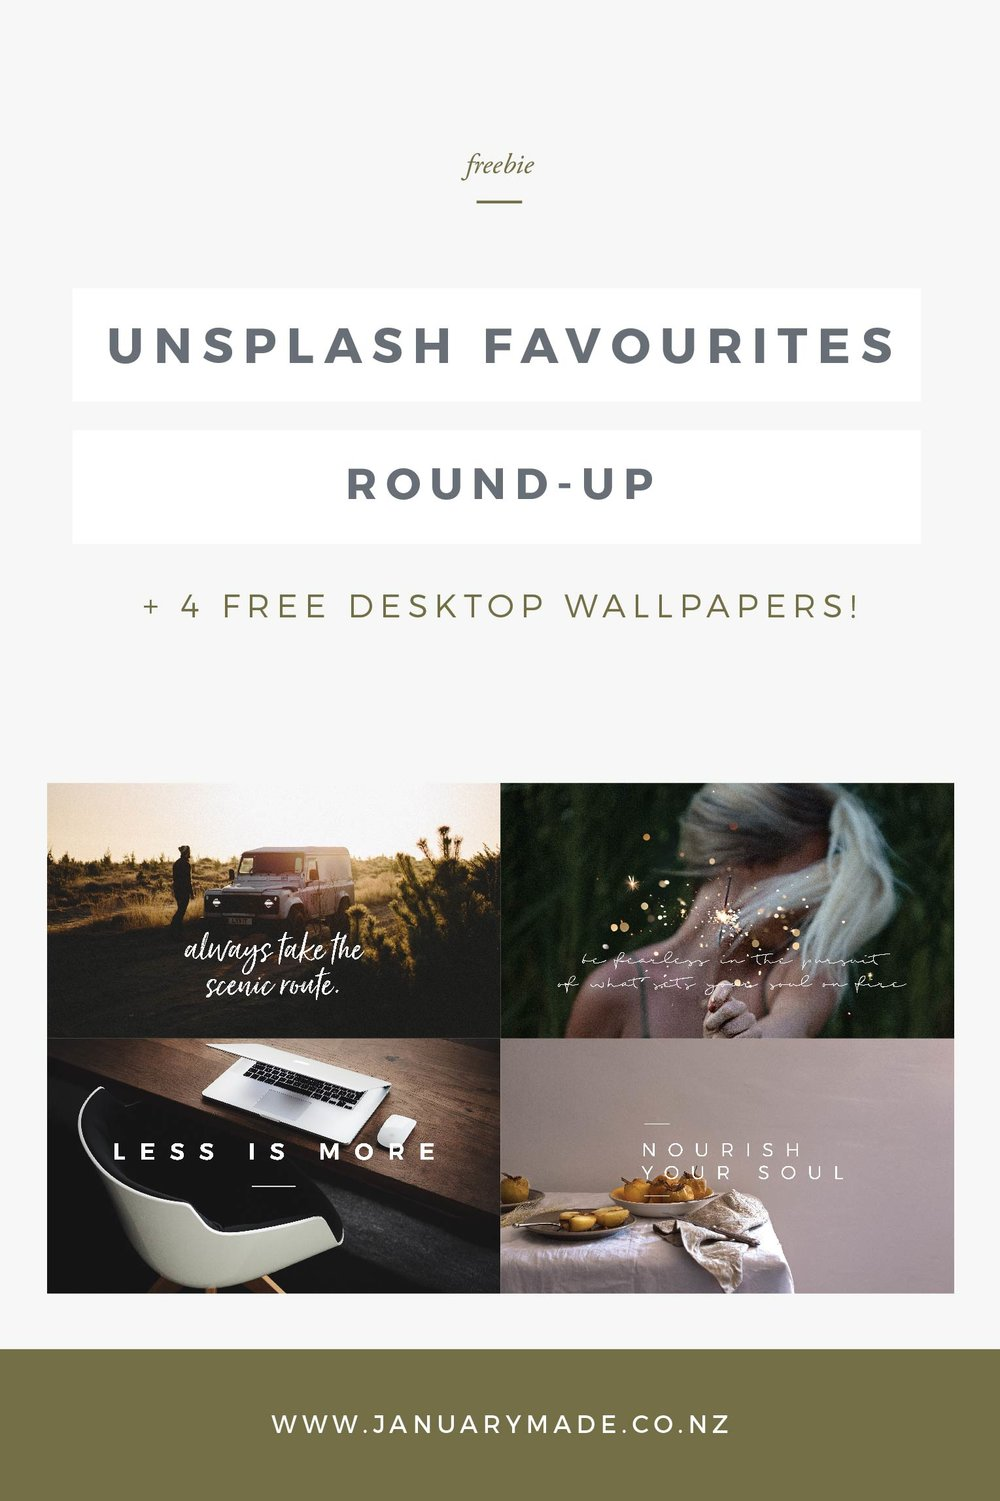 Unsplash Favourites Round-Up + FREE Desktop Wallpapers